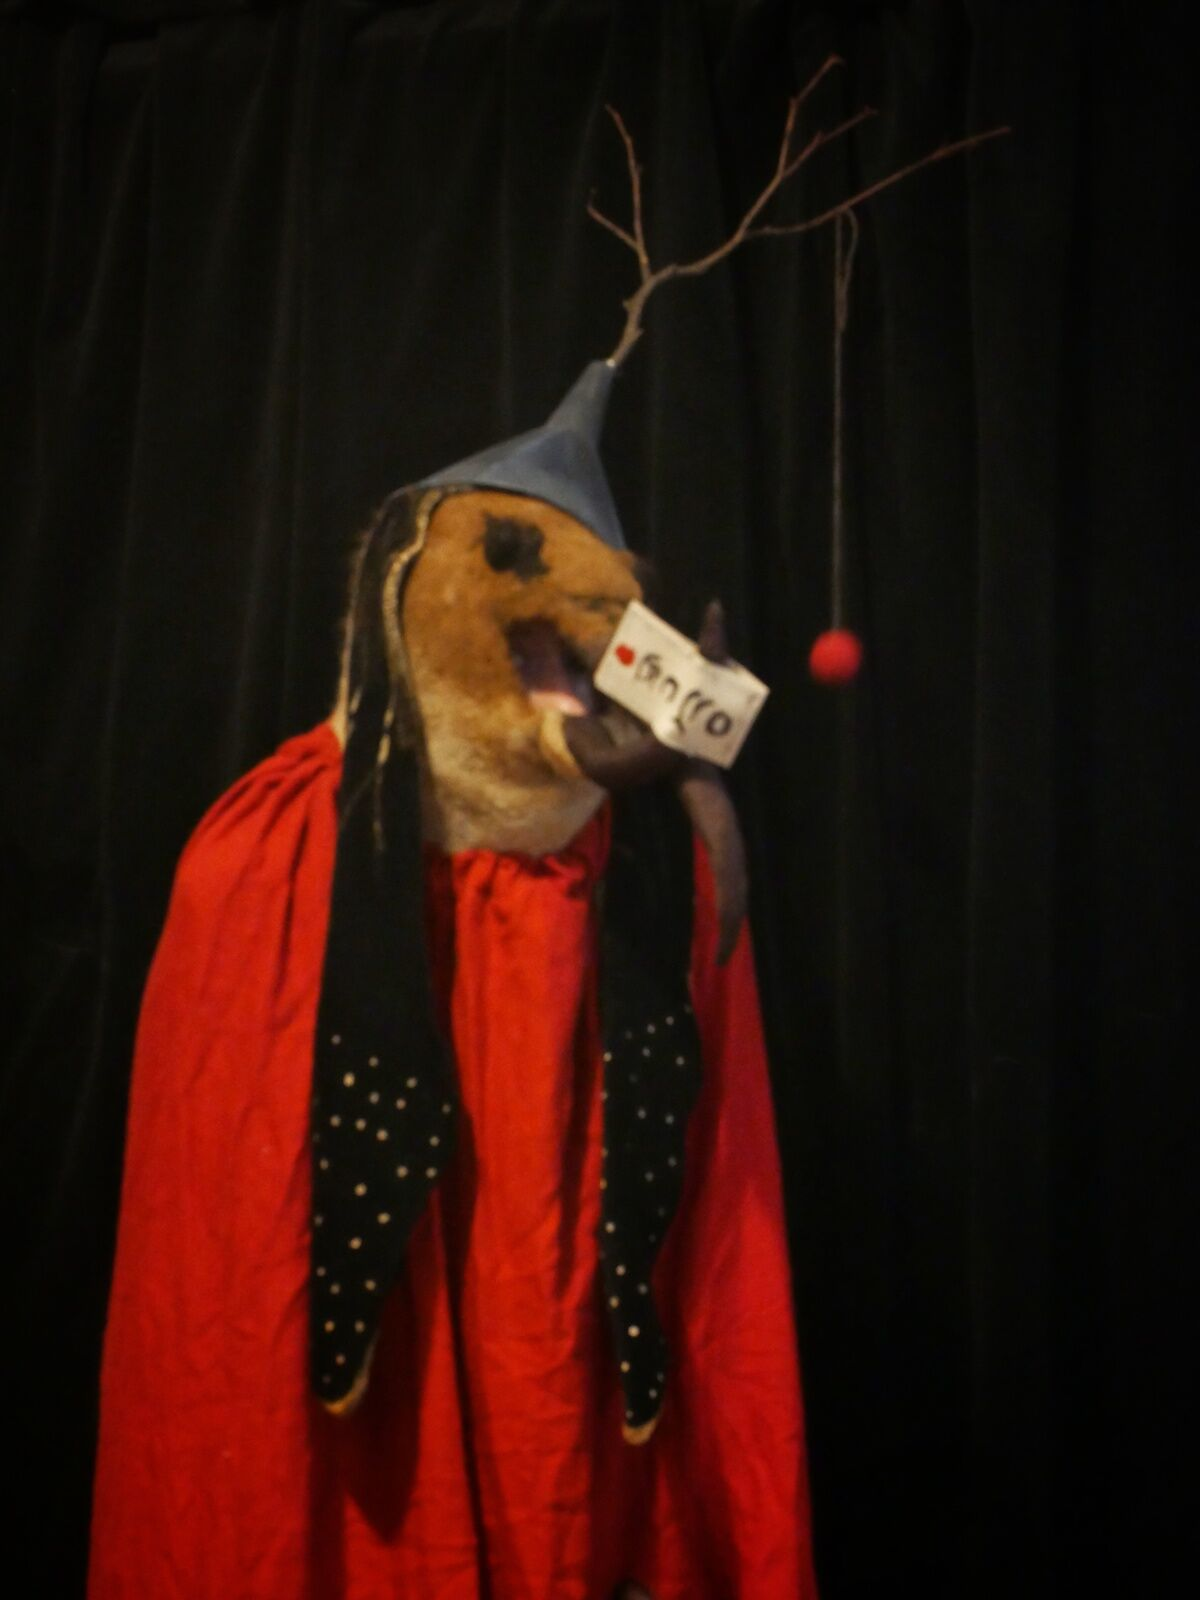 Rae Swon's costume based on one of the creatures in Hieronymus Bosch's Triptych of the Temptation of St. Anthony (1506). Photo courtesy Rae Swon.